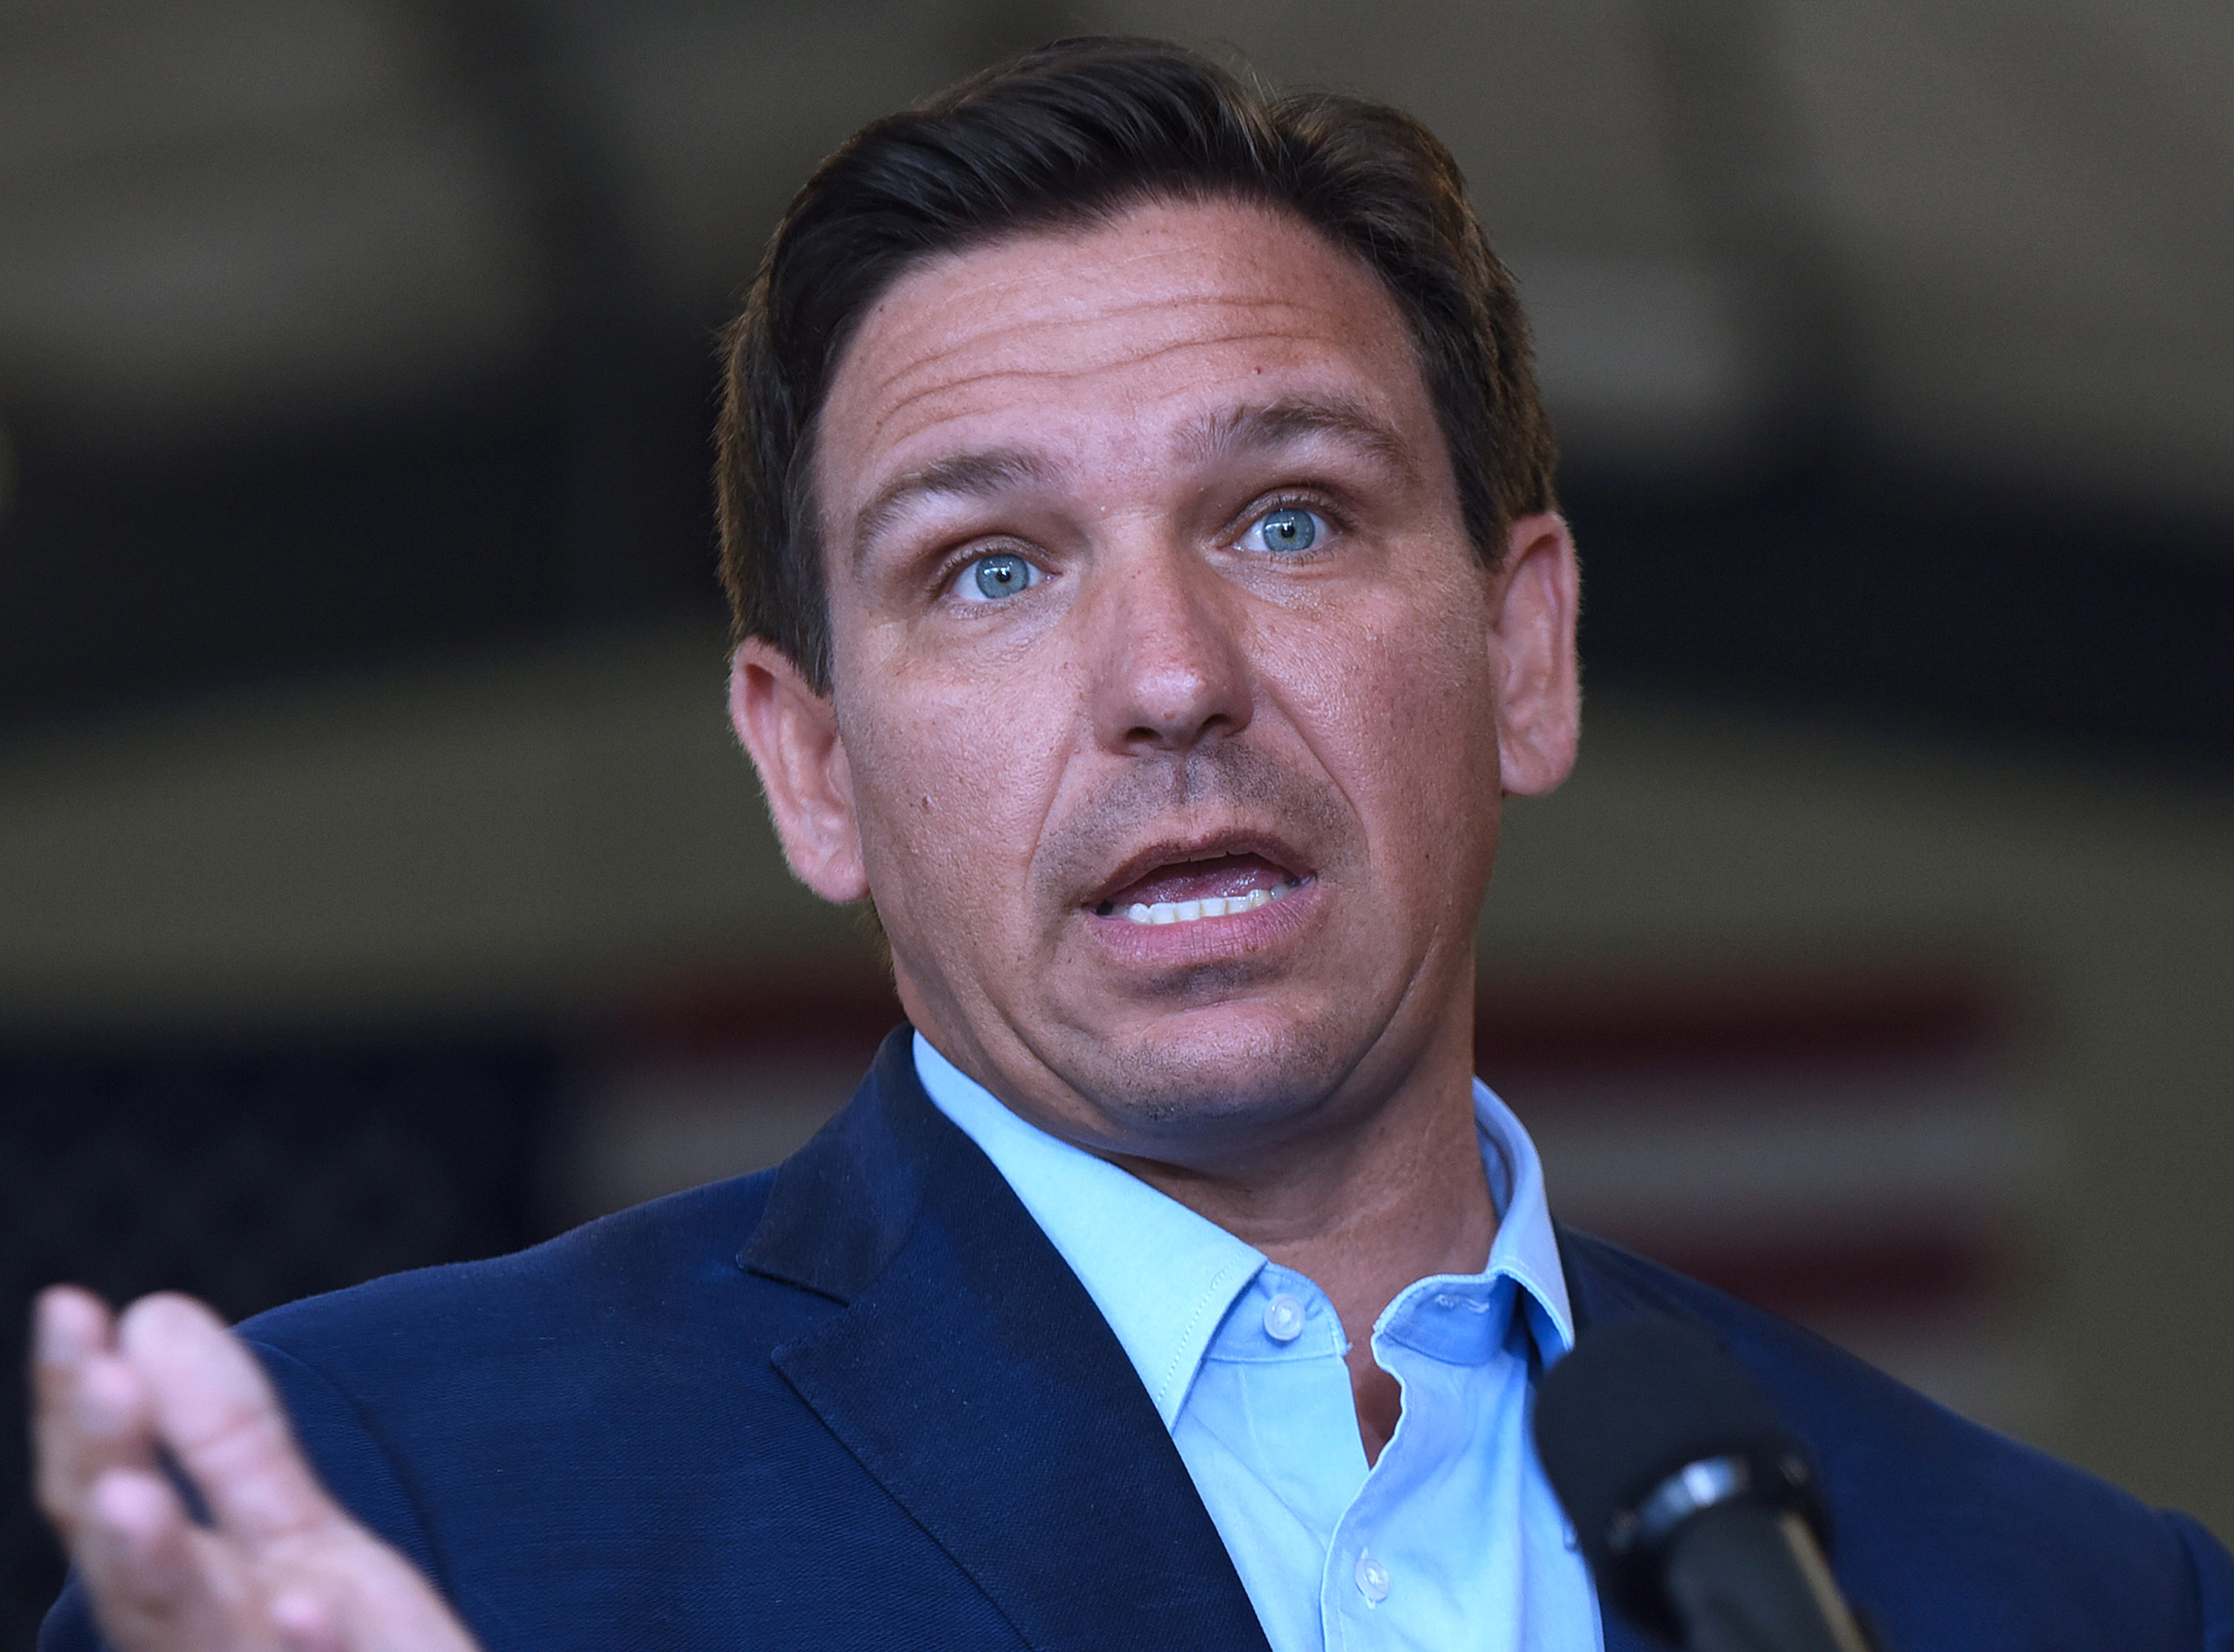 Florida Gov. Ron DeSantis speaks at a press conference on March 22, in Melbourne, Florida.